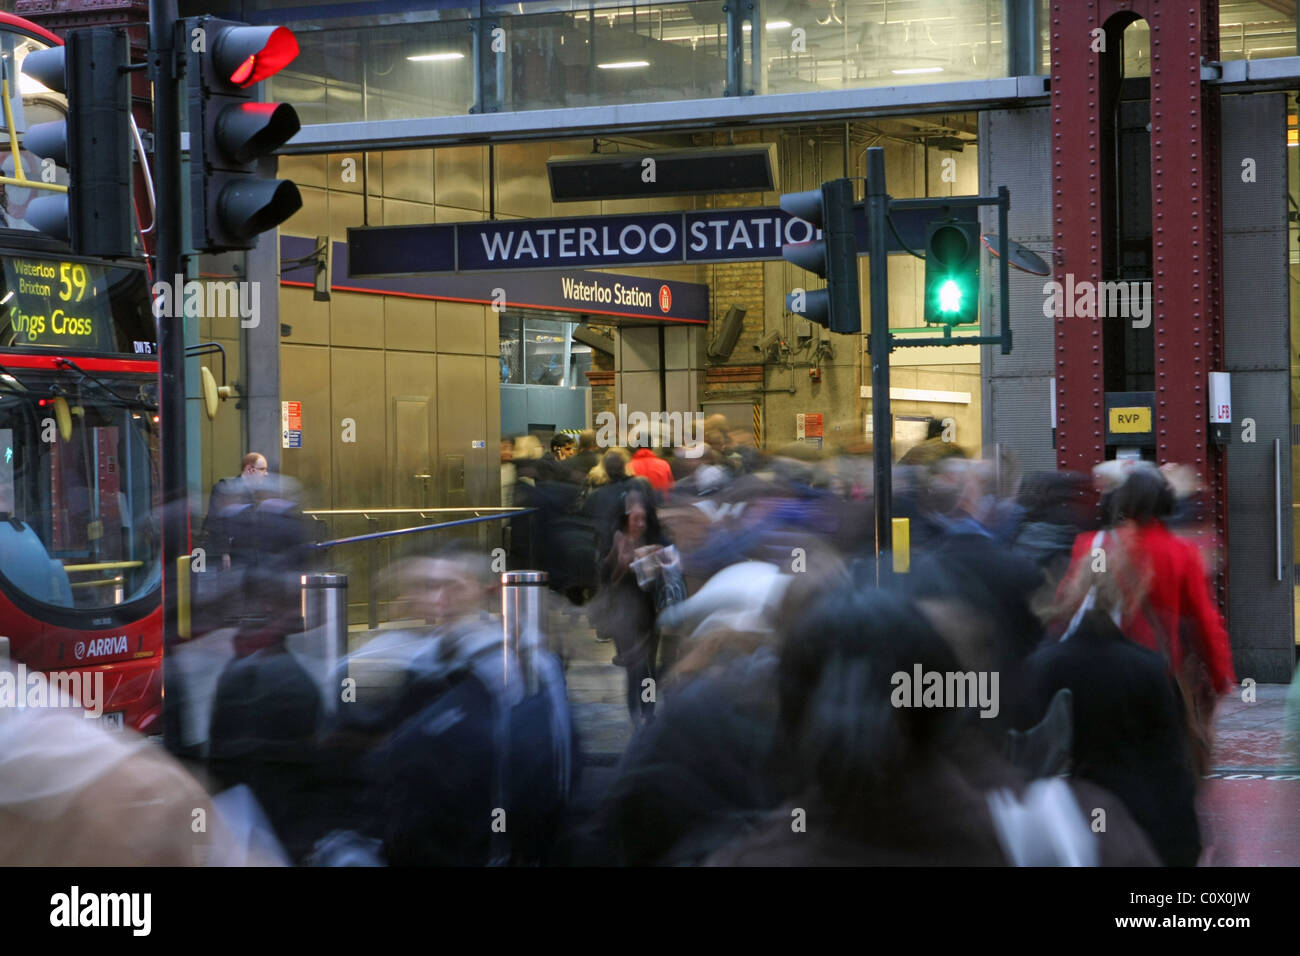 People crossing the road and walking into Waterloo train station in the evening rush hour, a bus and traffic lights - Stock Image